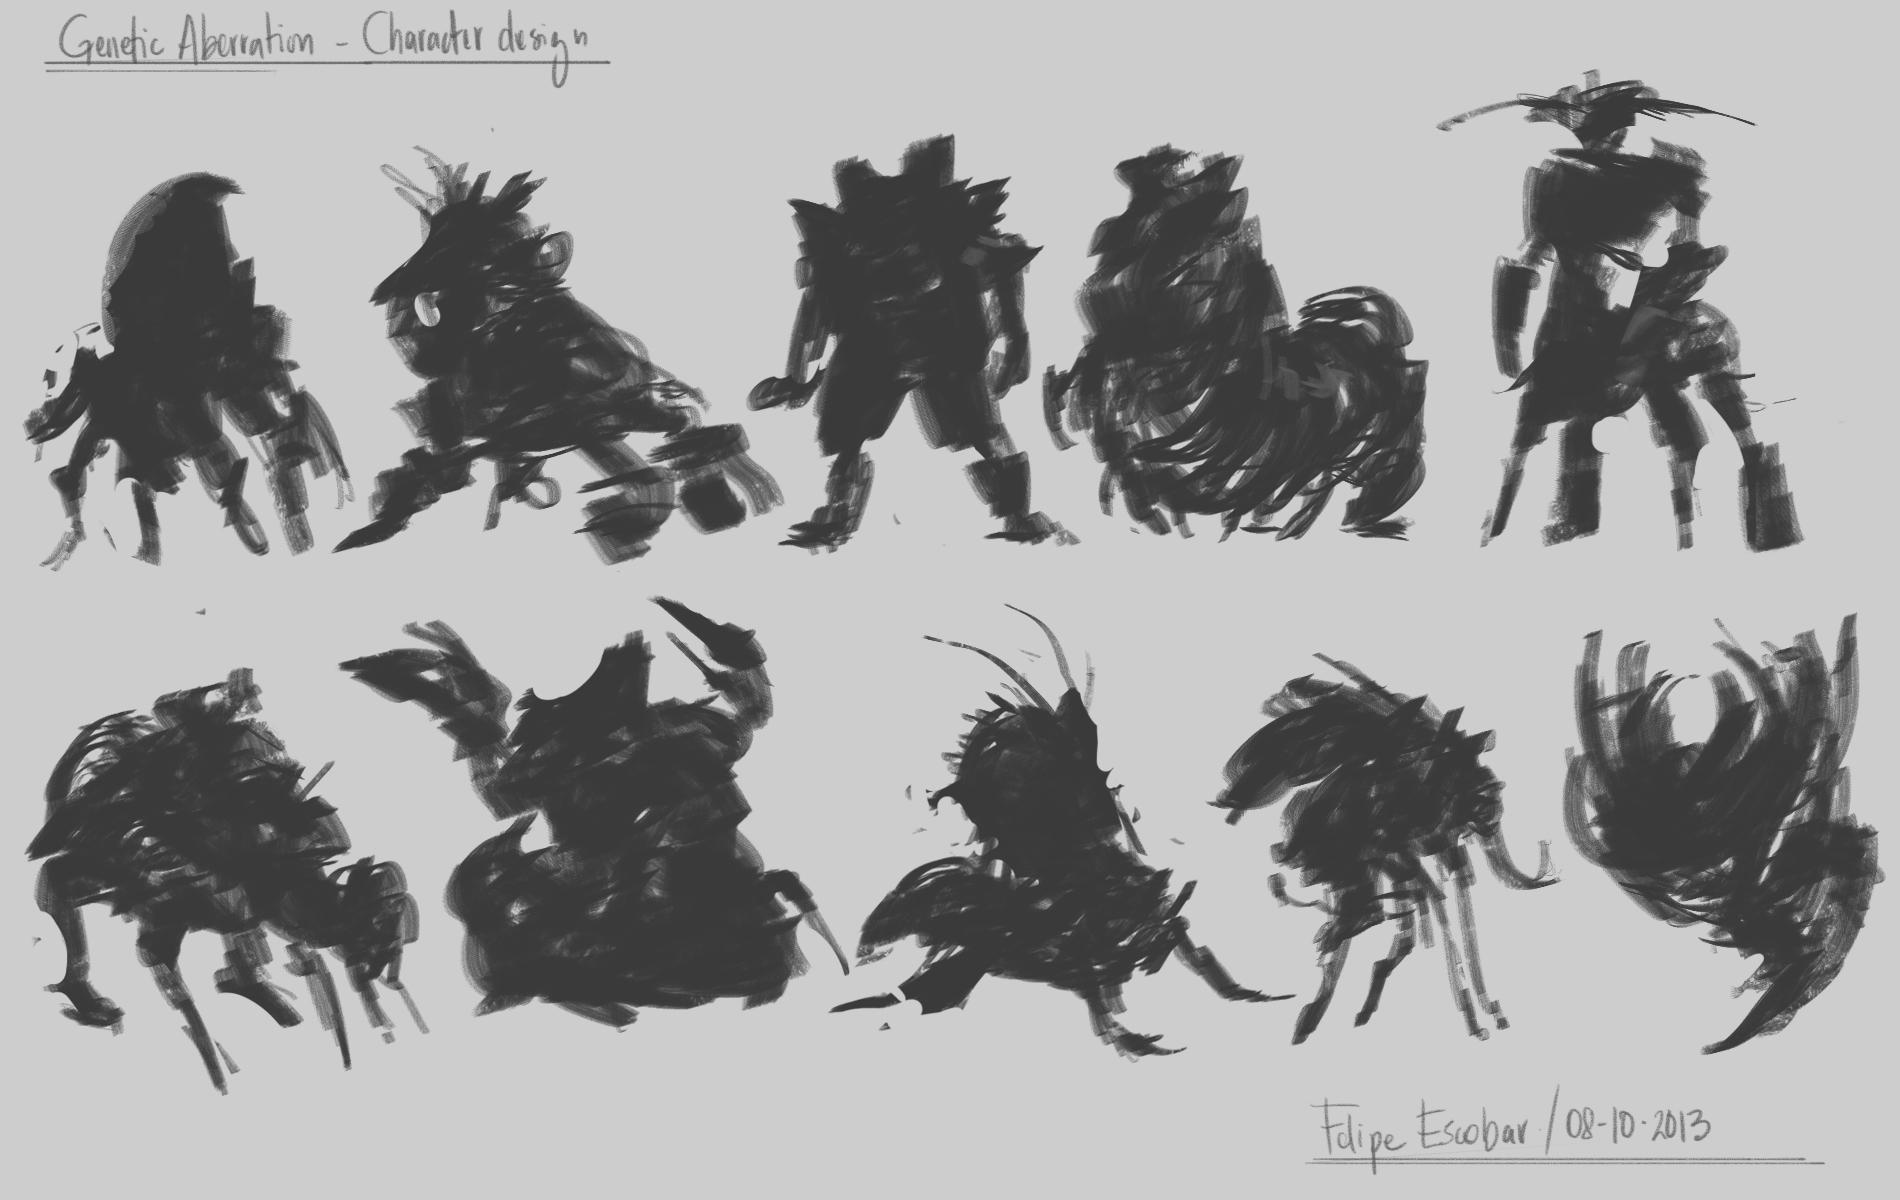 Genetic Aberration - Character design  - image 1 - student project